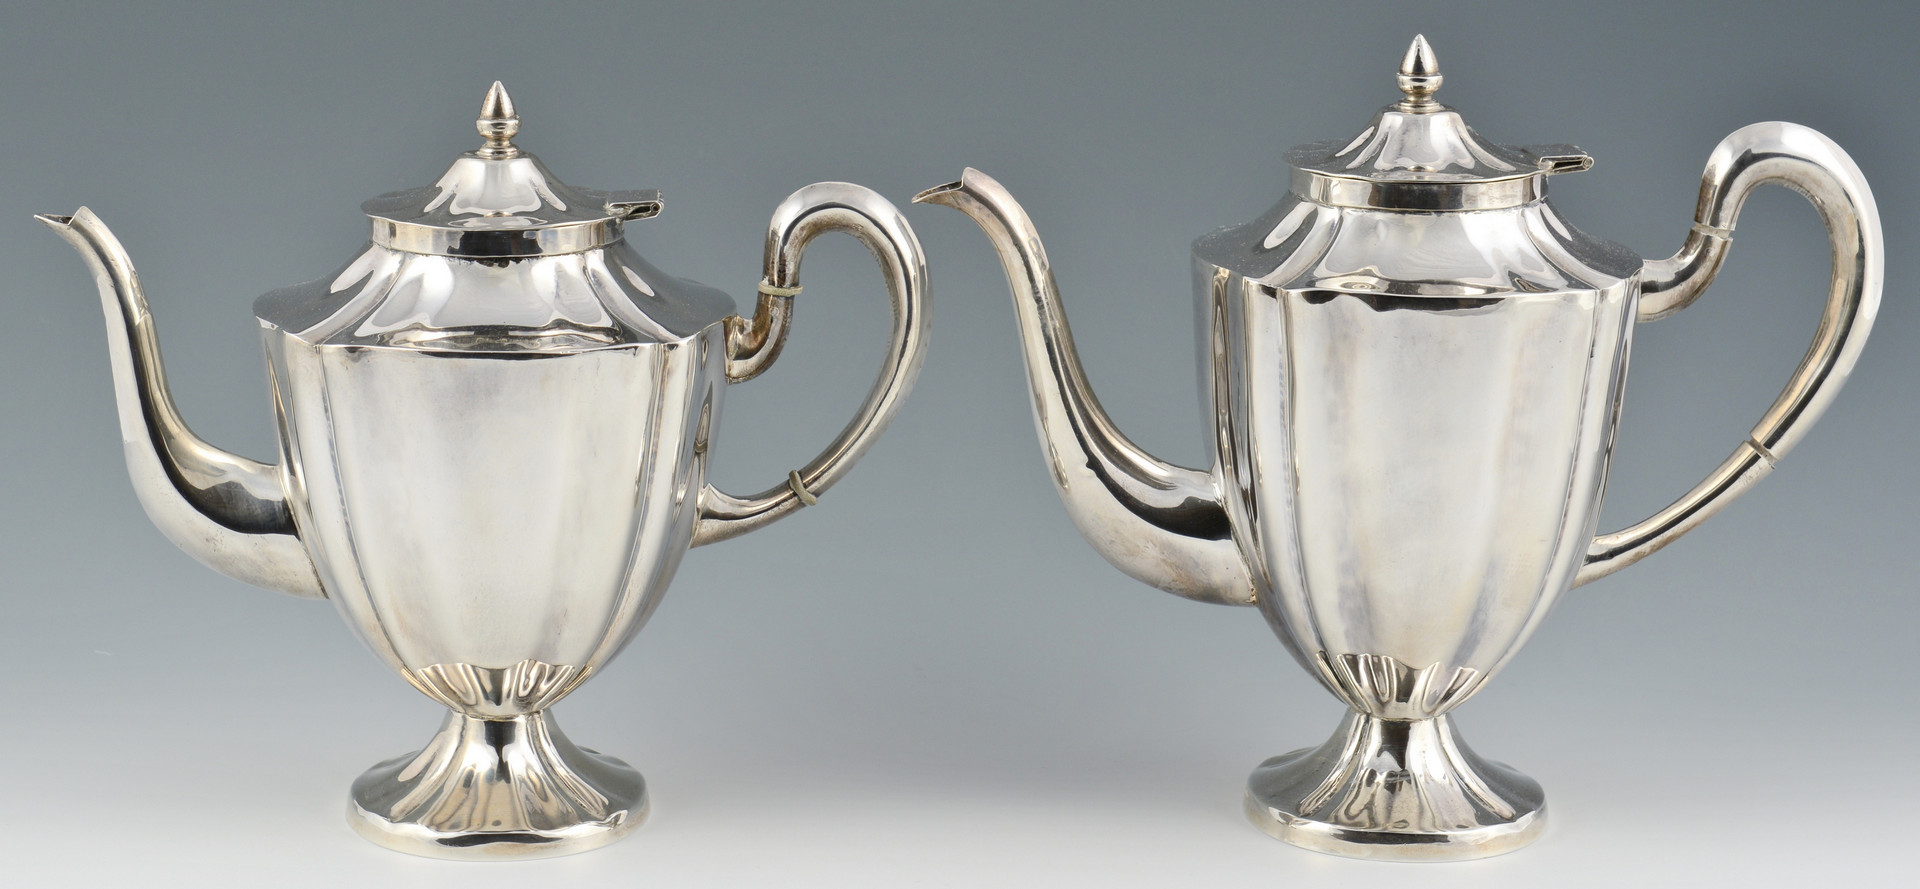 Lot 100: Maciel Sterling Tea Set w/ Sterling Tray, 6 pcs.